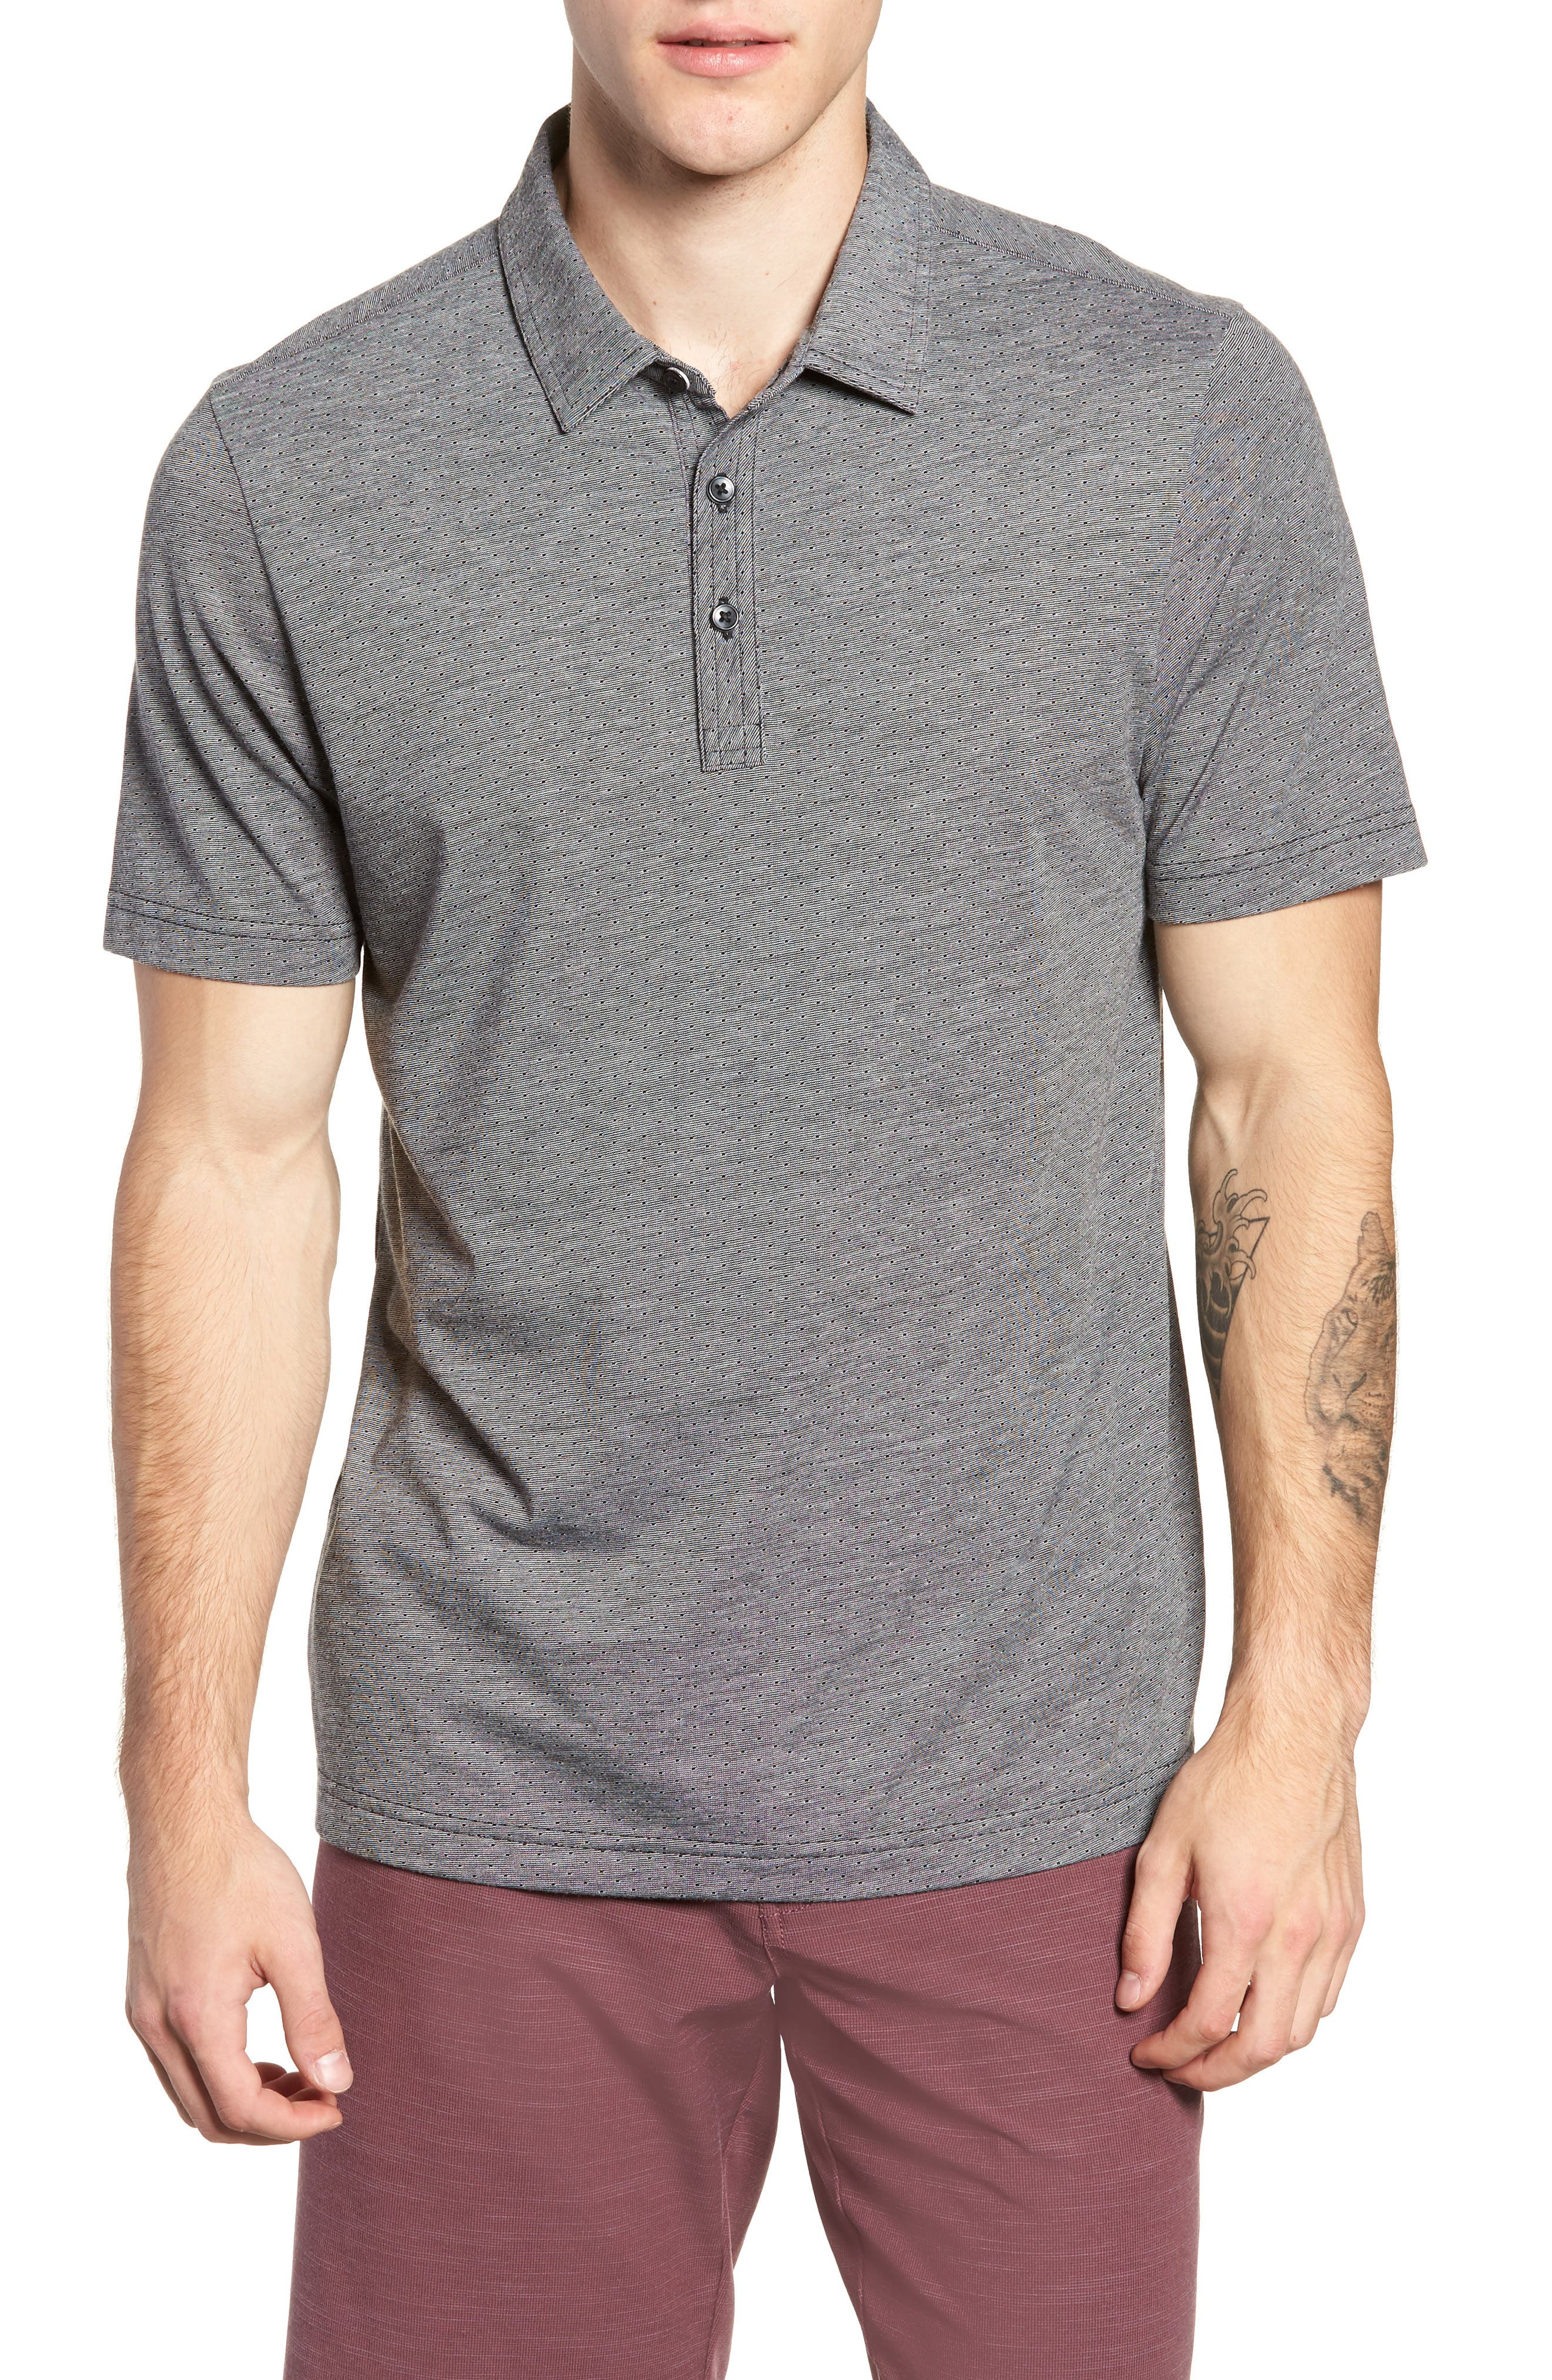 Sway Sway Trim Fit Polo,                         Main,                         color, 001